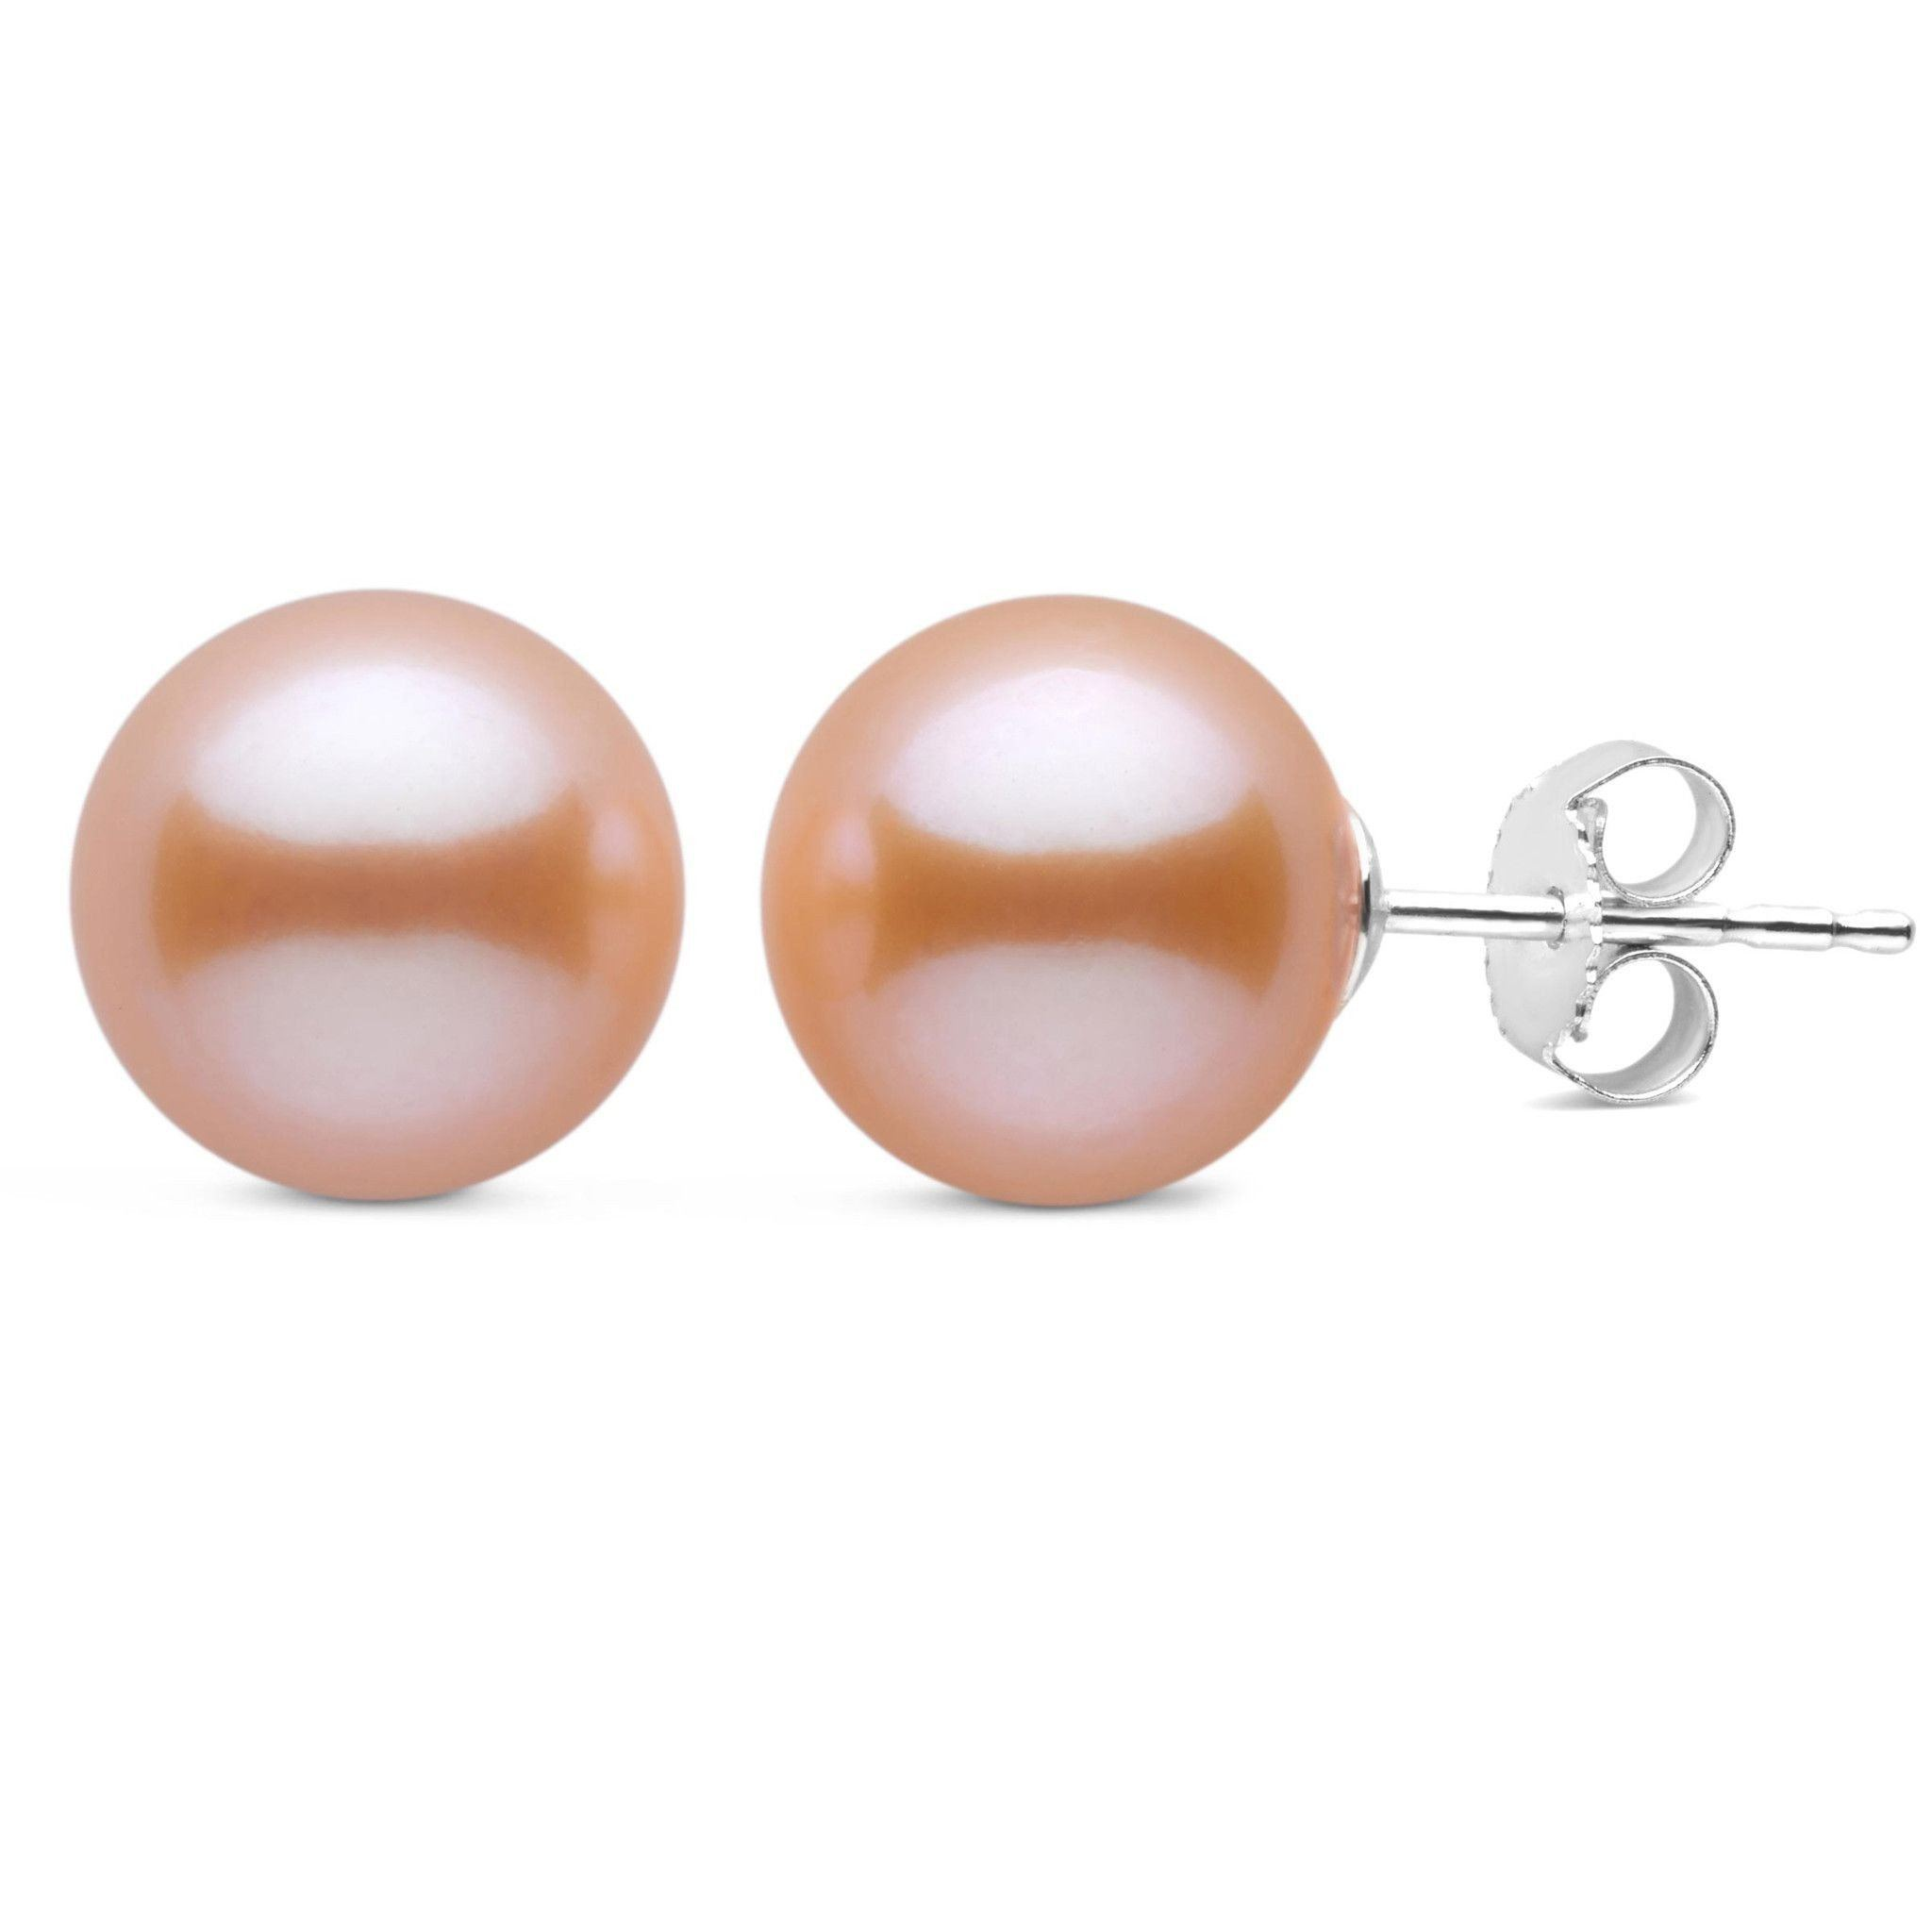 9.5-10.0 mm Pink to Peach Freshadama Freshwater Pearl Stud Earrings